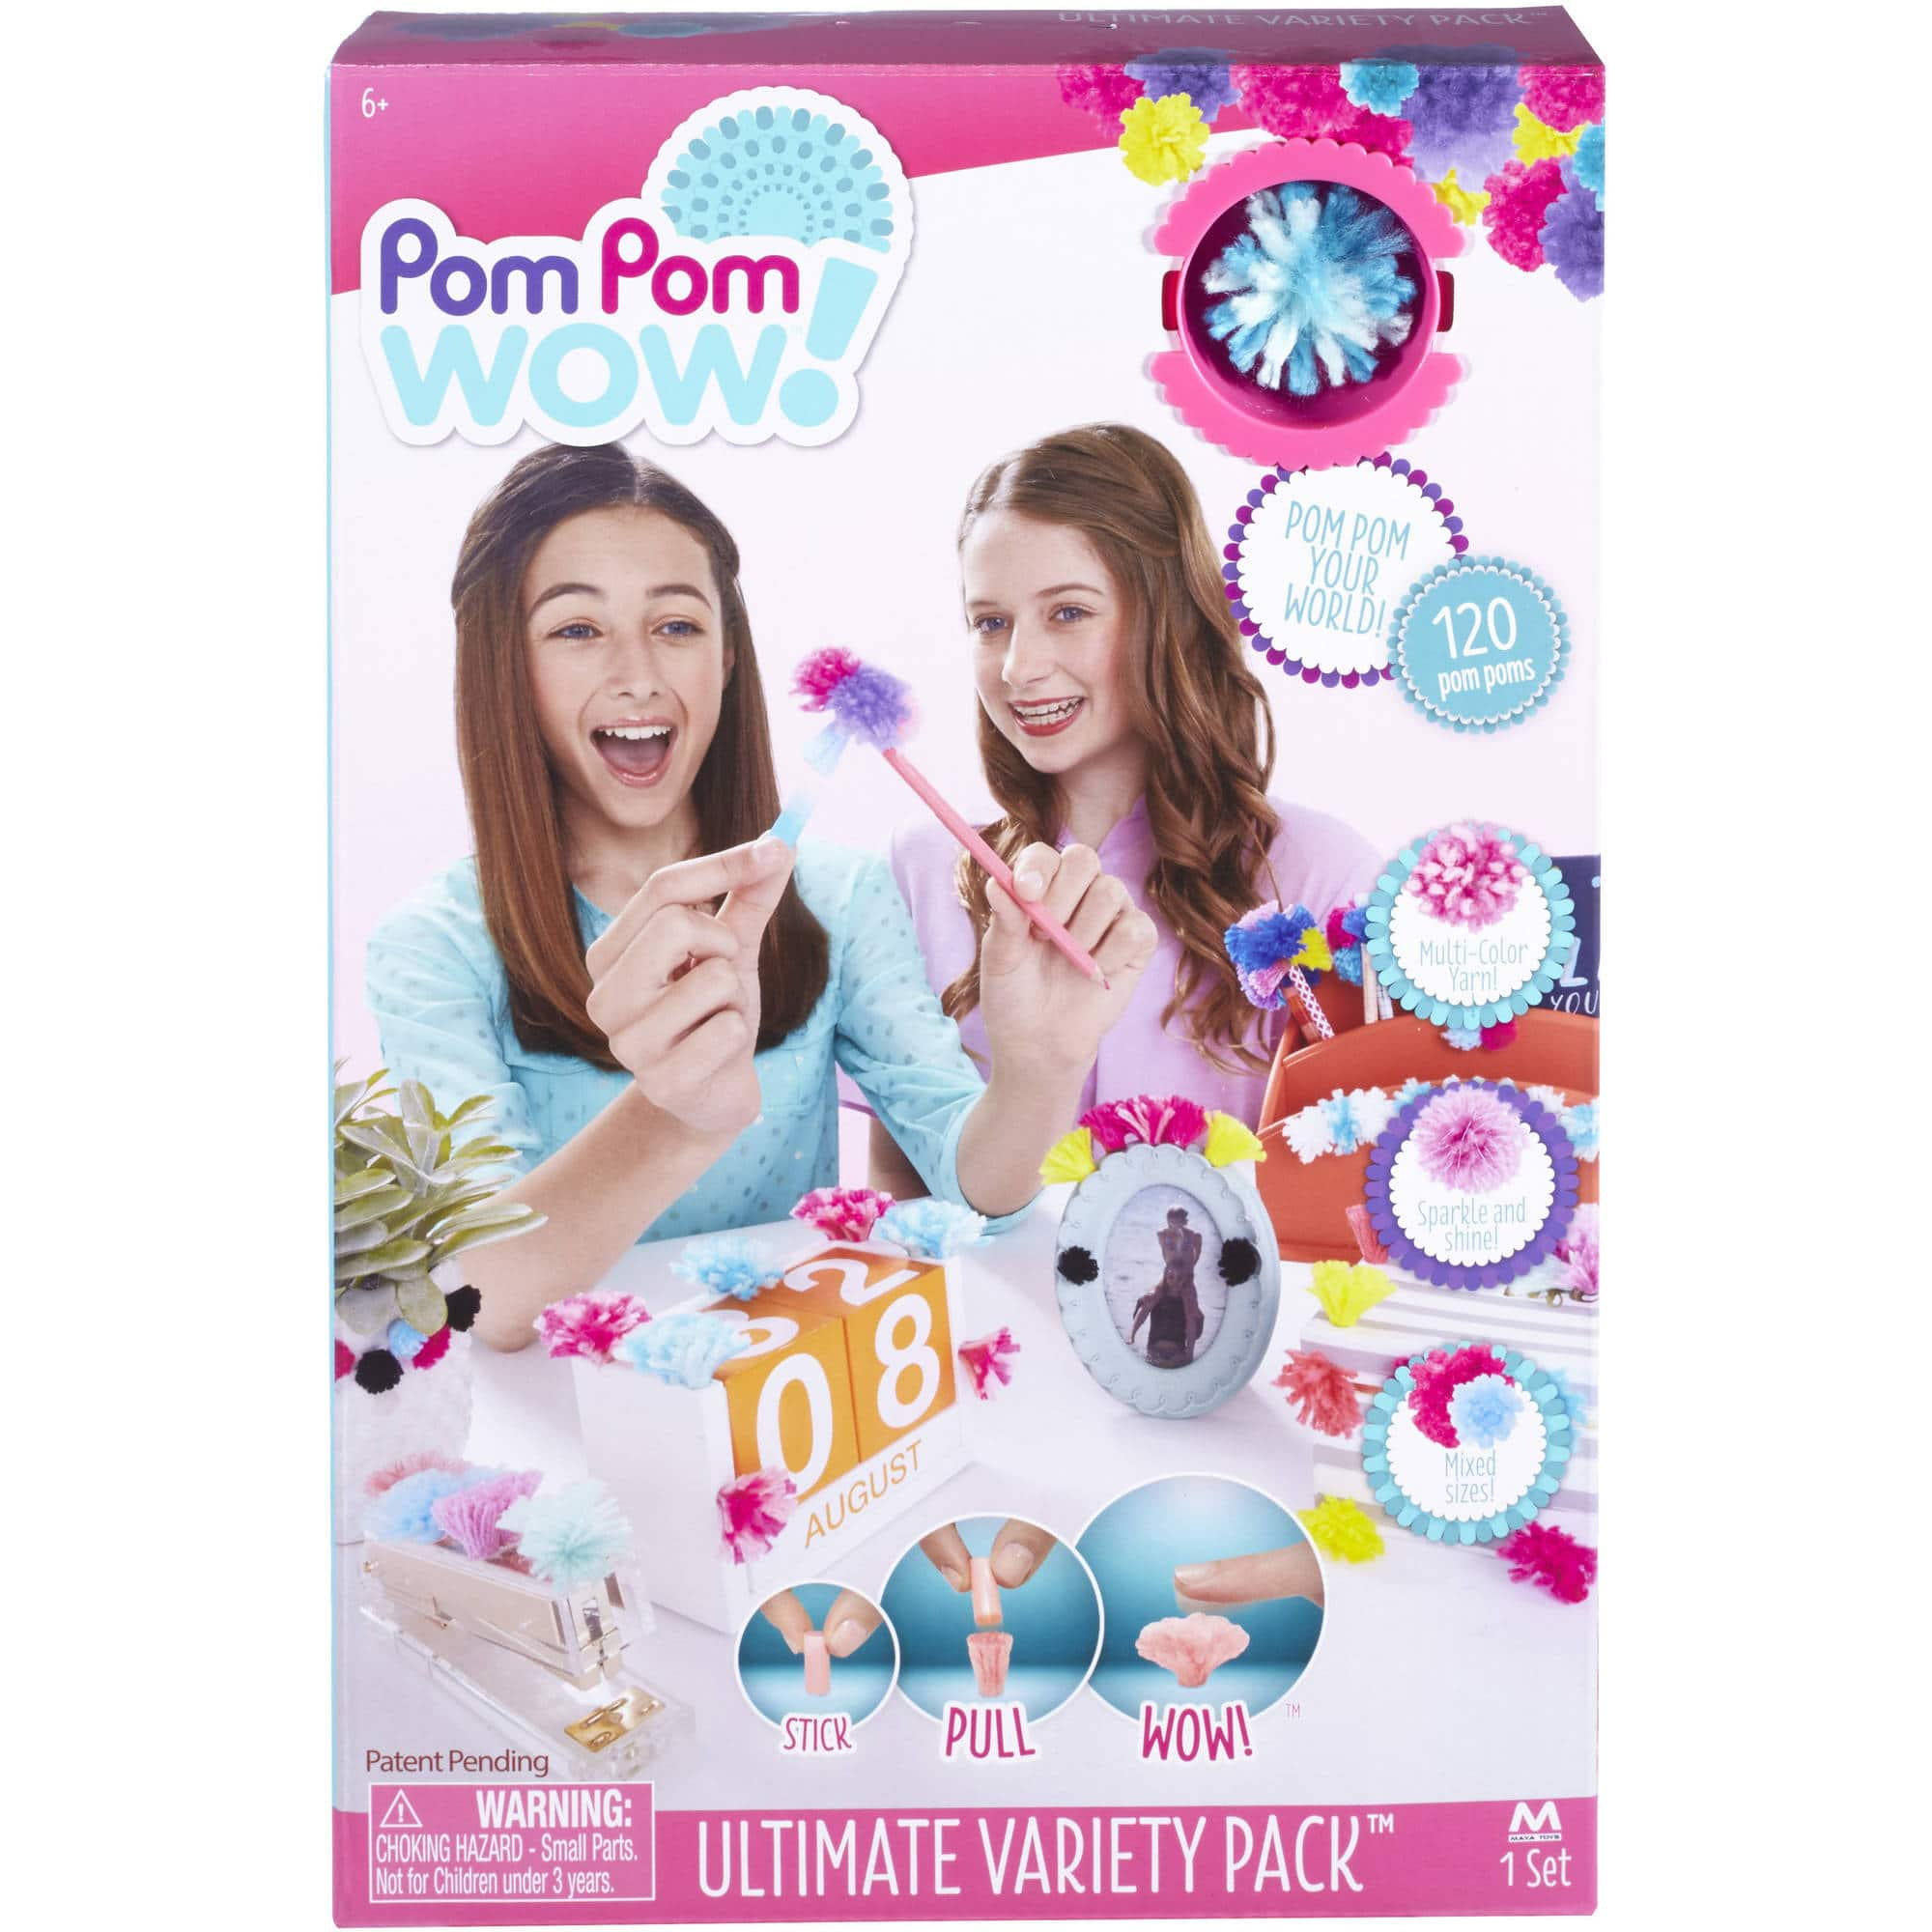 Pom Pom Wow! Ultimate Variety Pack $4.23 + Free Shipping w/ Prime or on $25+